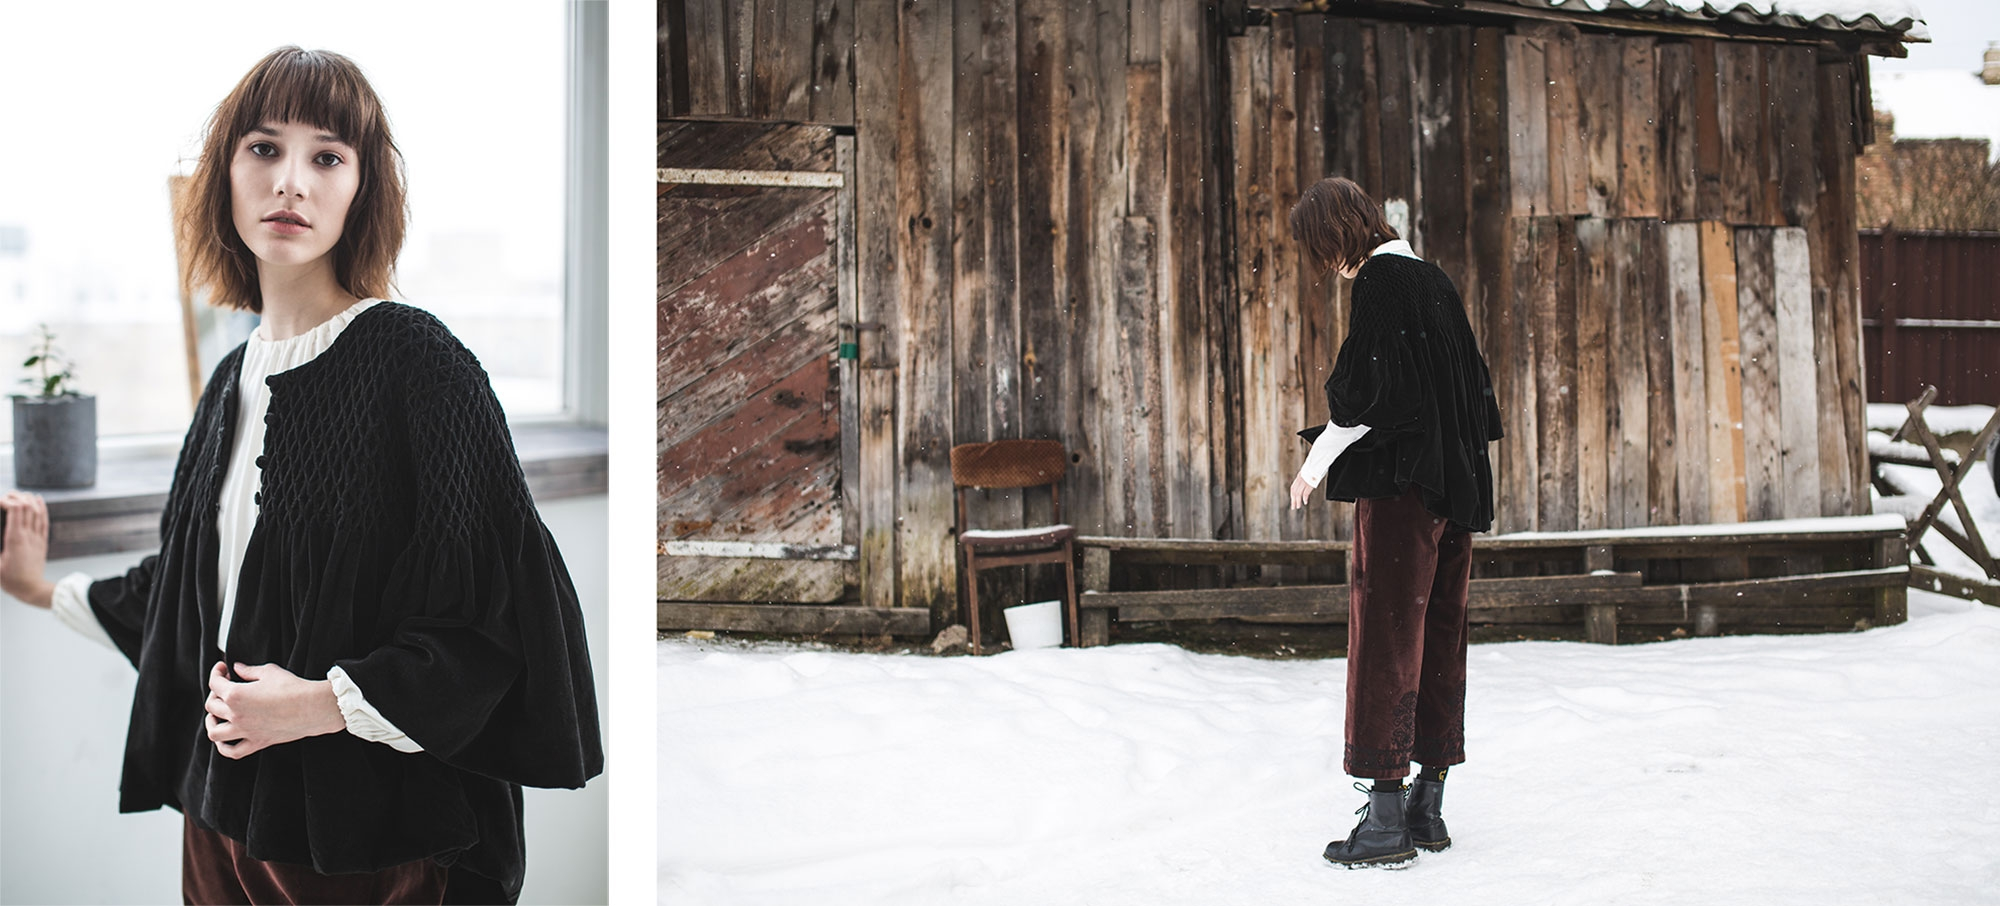 Voriagh-FW-2018-Folk-velvet-jacket-bohemian-folklore-happy-snow-knit